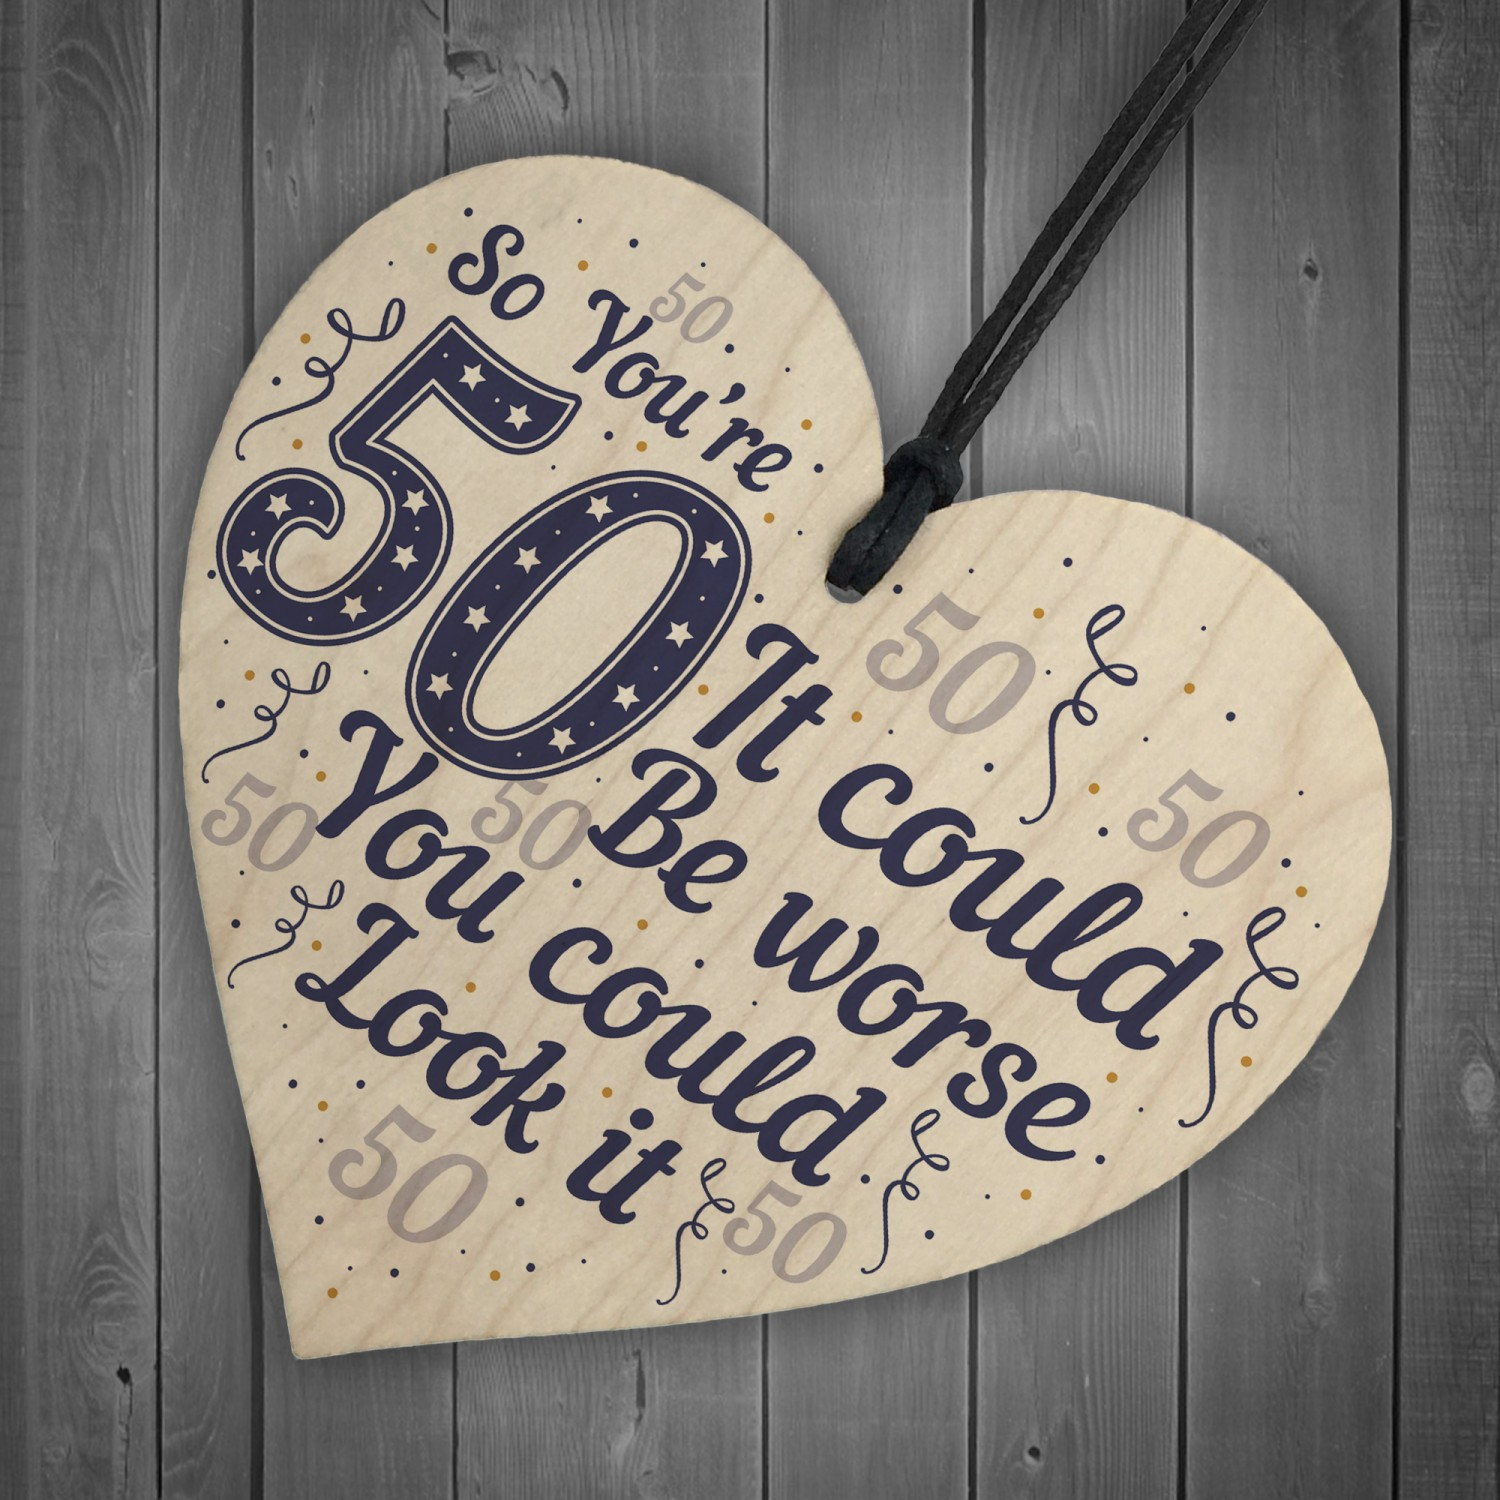 50th Birthday Gifts Novelty Wood Sign Funny Present For